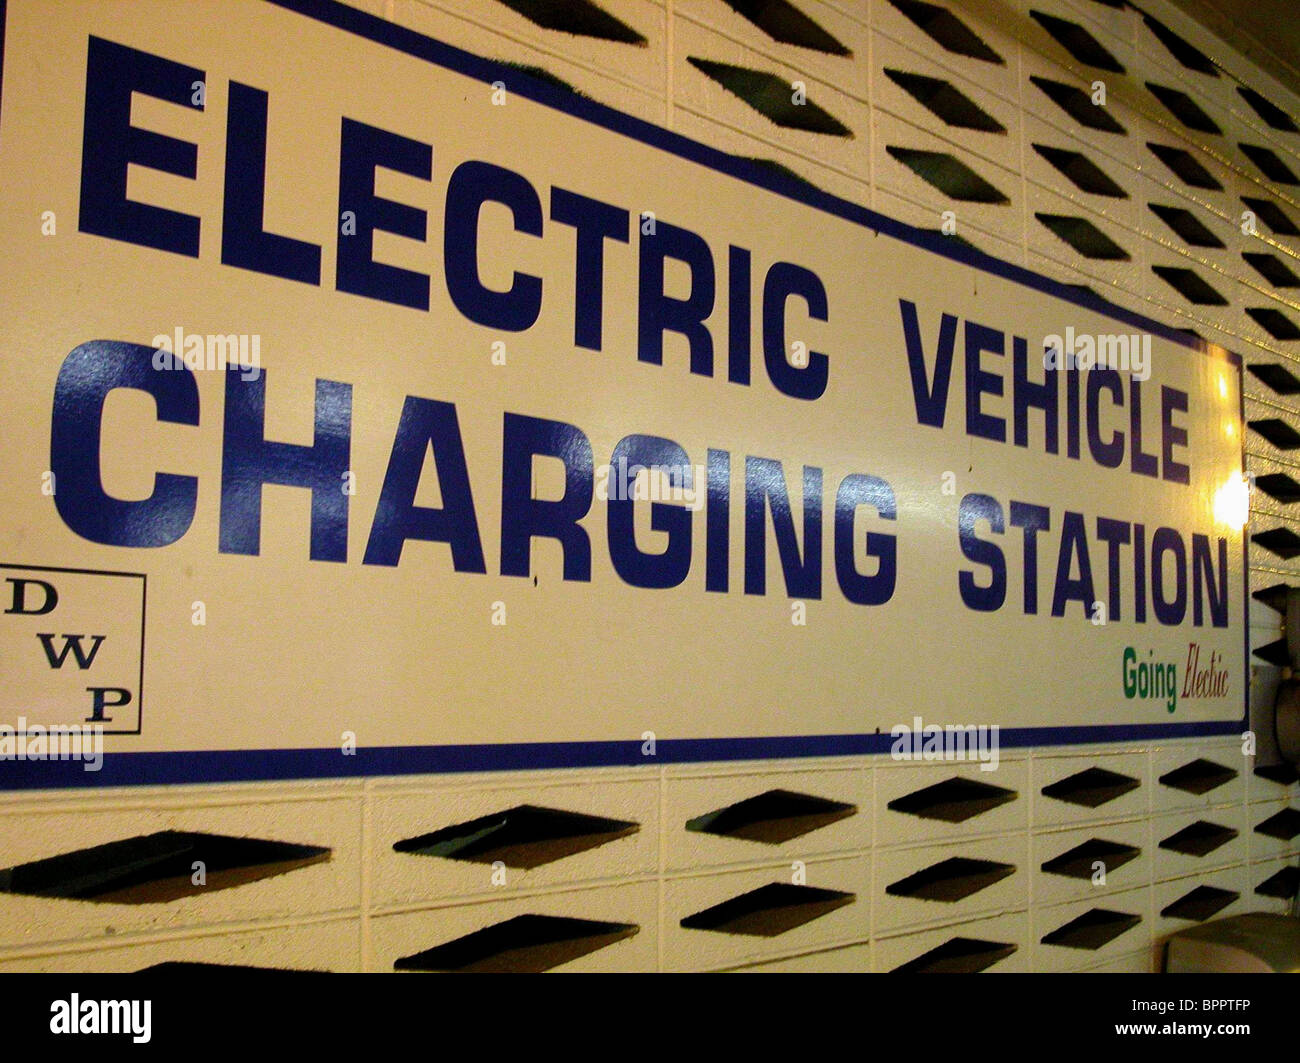 ELECTRIC VEHICLE CHARGING STATION WHO KILLED THE ELECTRIC CAR? (2006) - Stock Image